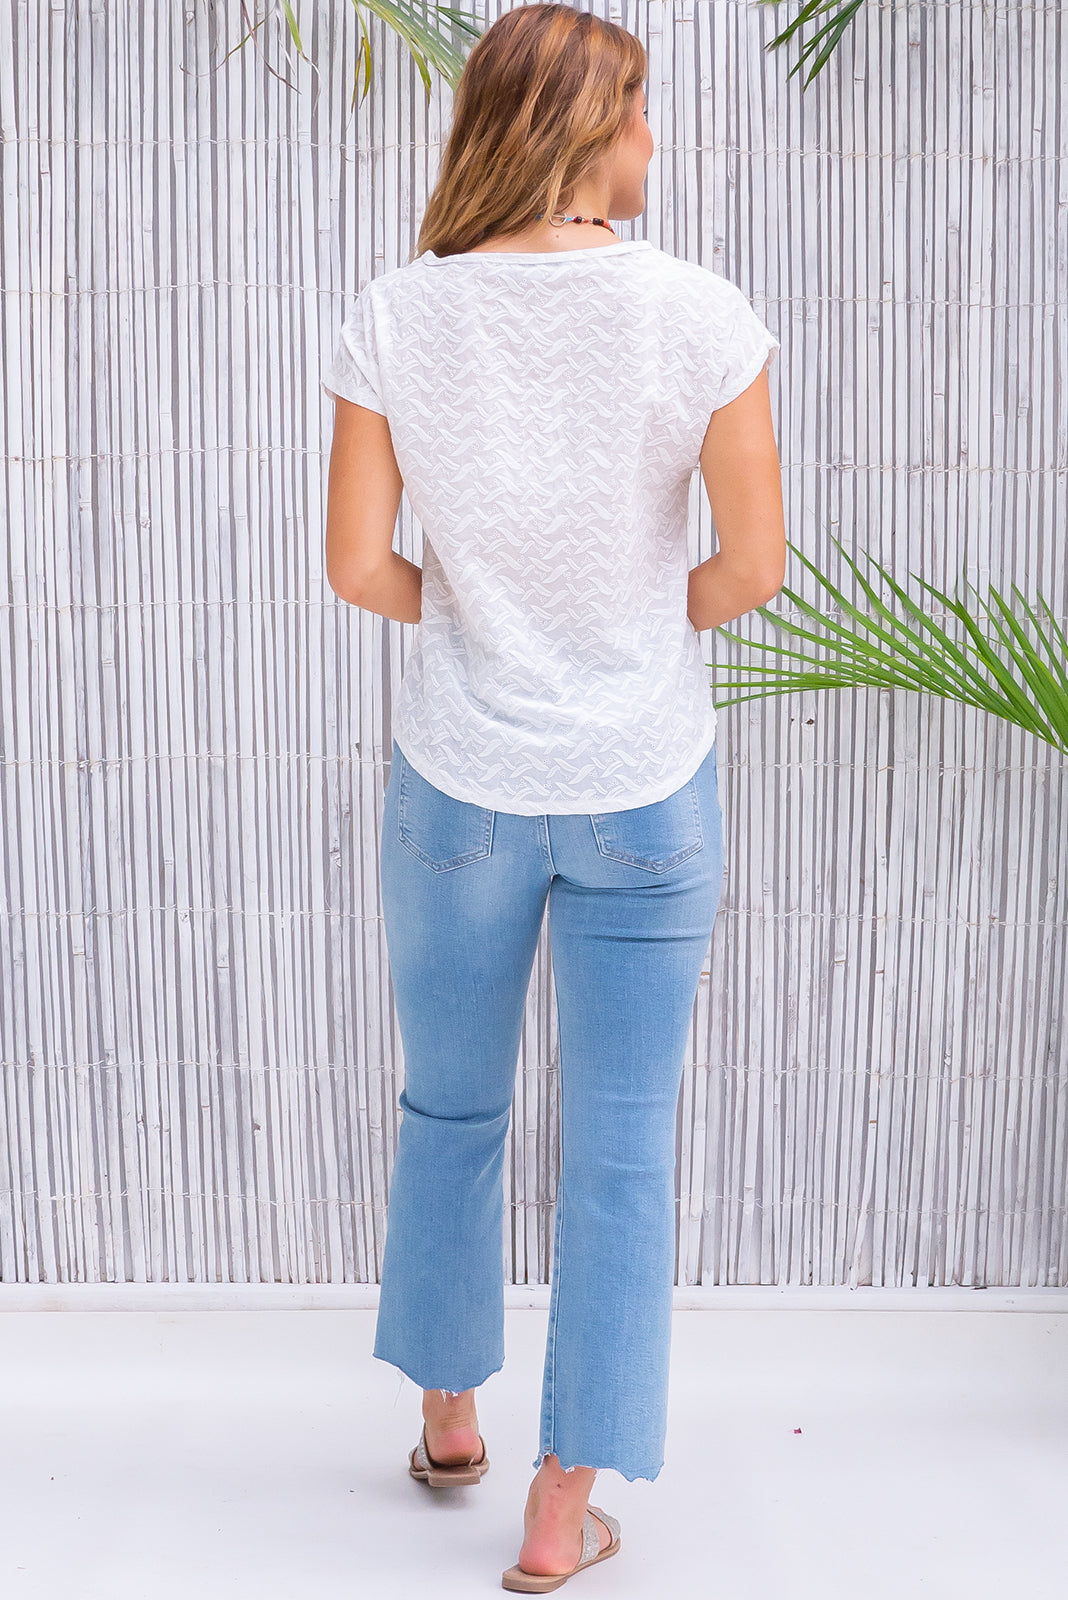 An intricate feather print embroidered on a crisp, 100% cotton T-shirt, the new Anglaise Top Feather Embroidery features lightweight/non-stretch/unlined, curved hem.